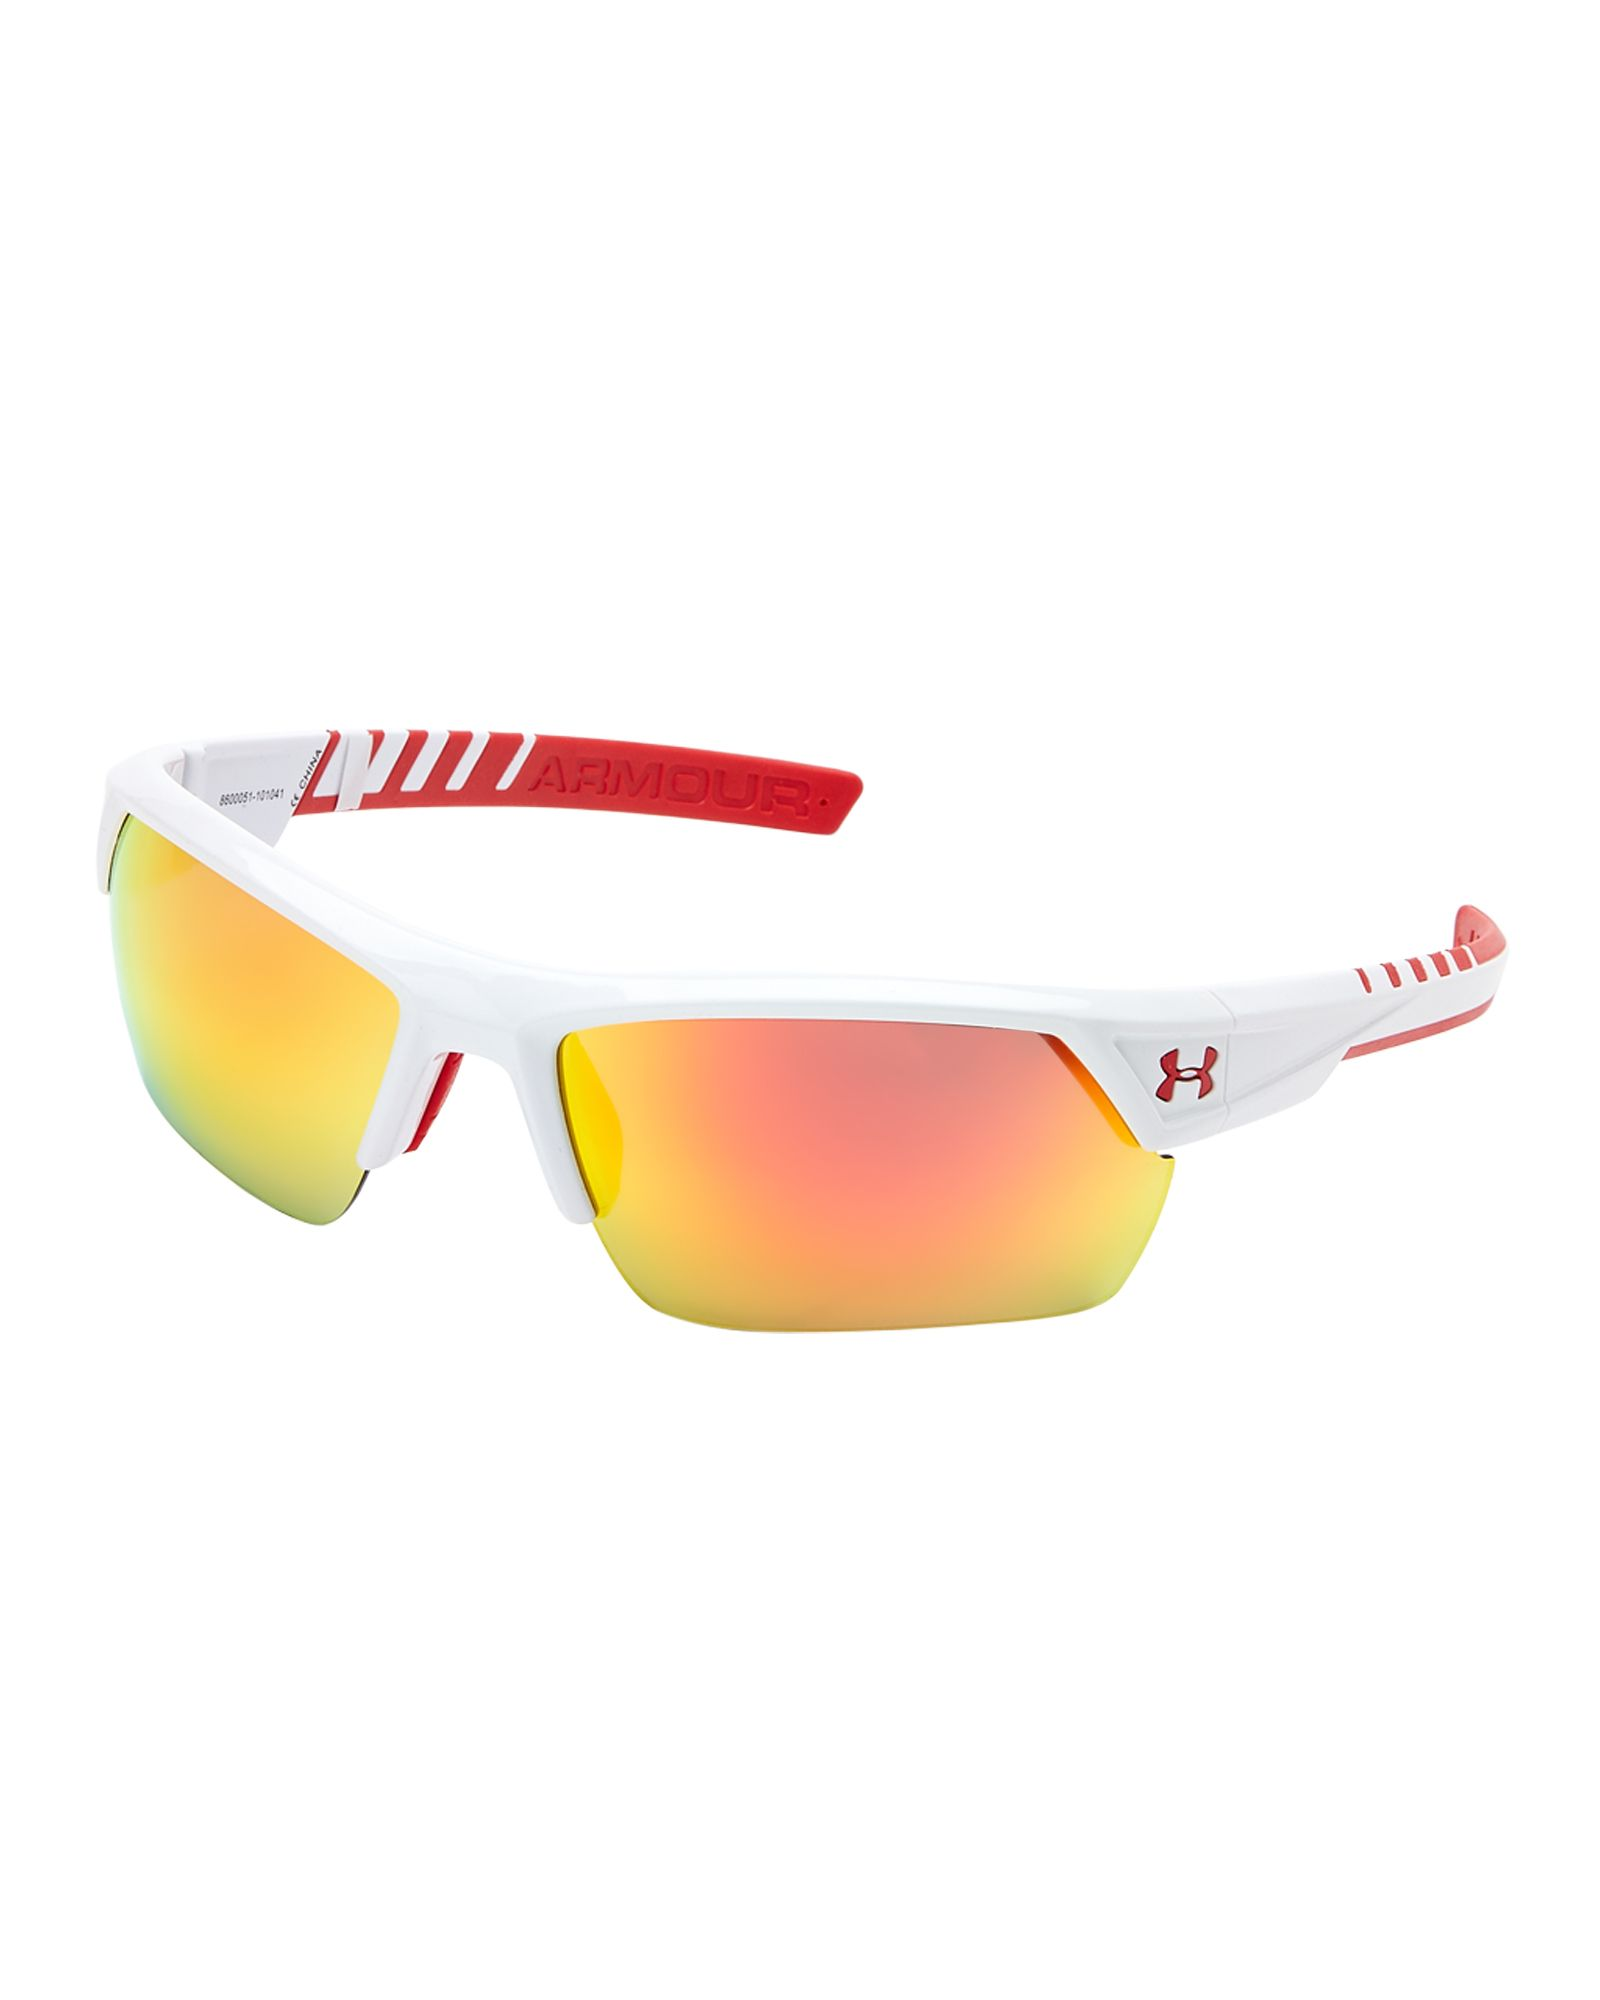 46417028668 Under Armour White   Red Igniter 2.0 Wrap Around Sunglasses ...